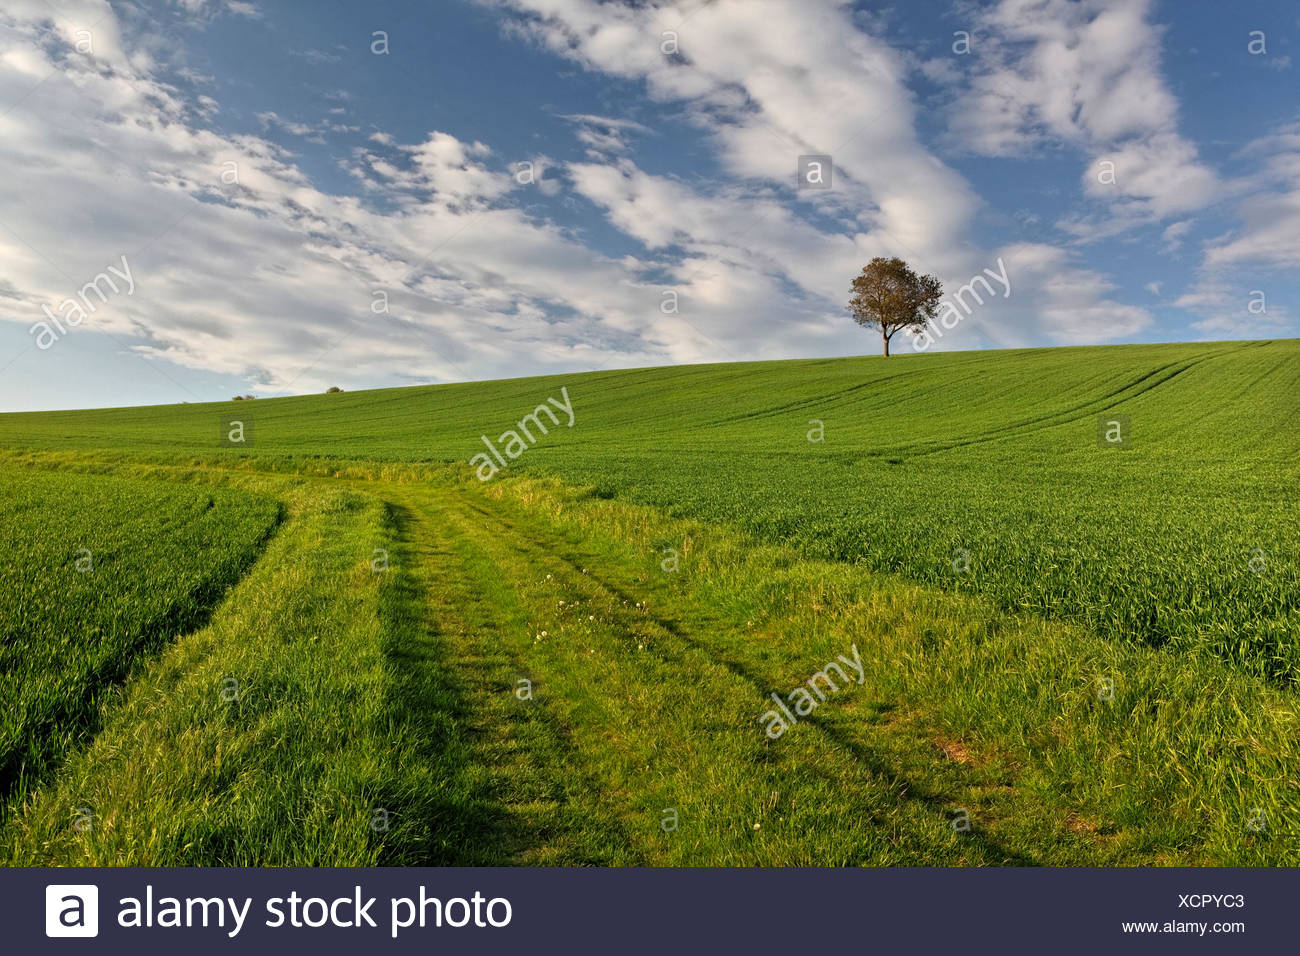 Isolate tree, green field, agricultural landscape, Puy de Dome, Auvergne, France, Europe - Stock Image